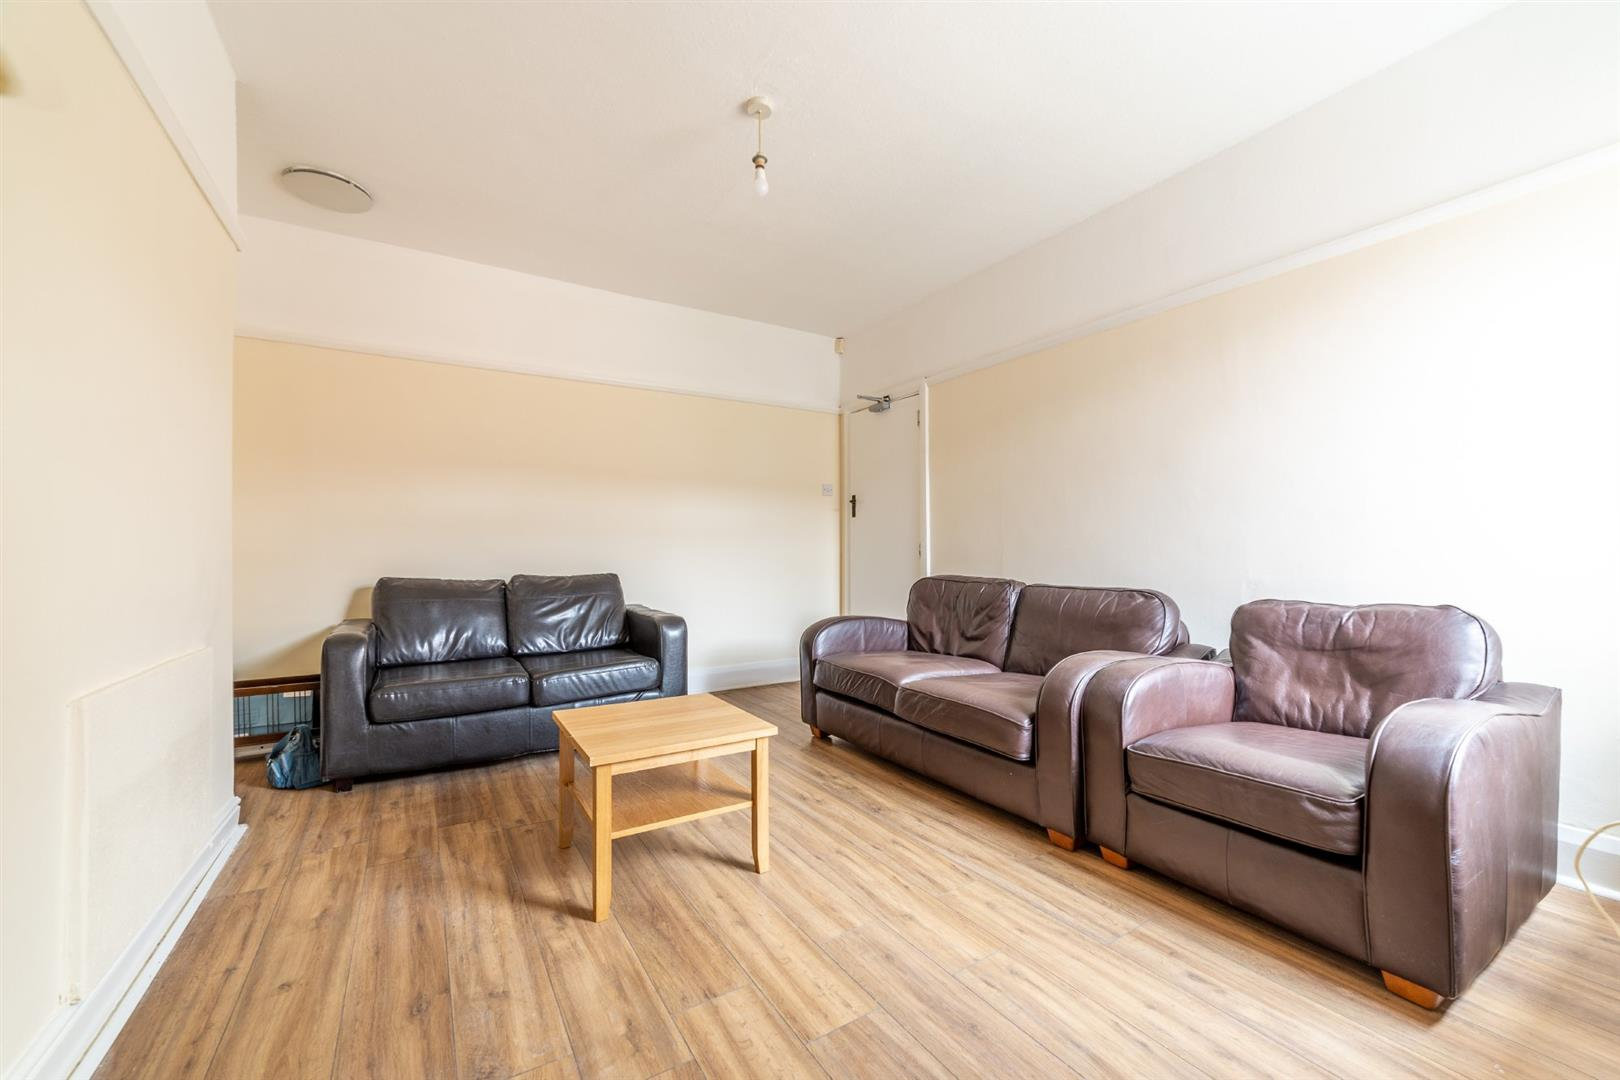 3 bed flat to rent in Newcastle Upon Tyne, NE2 2JS 1